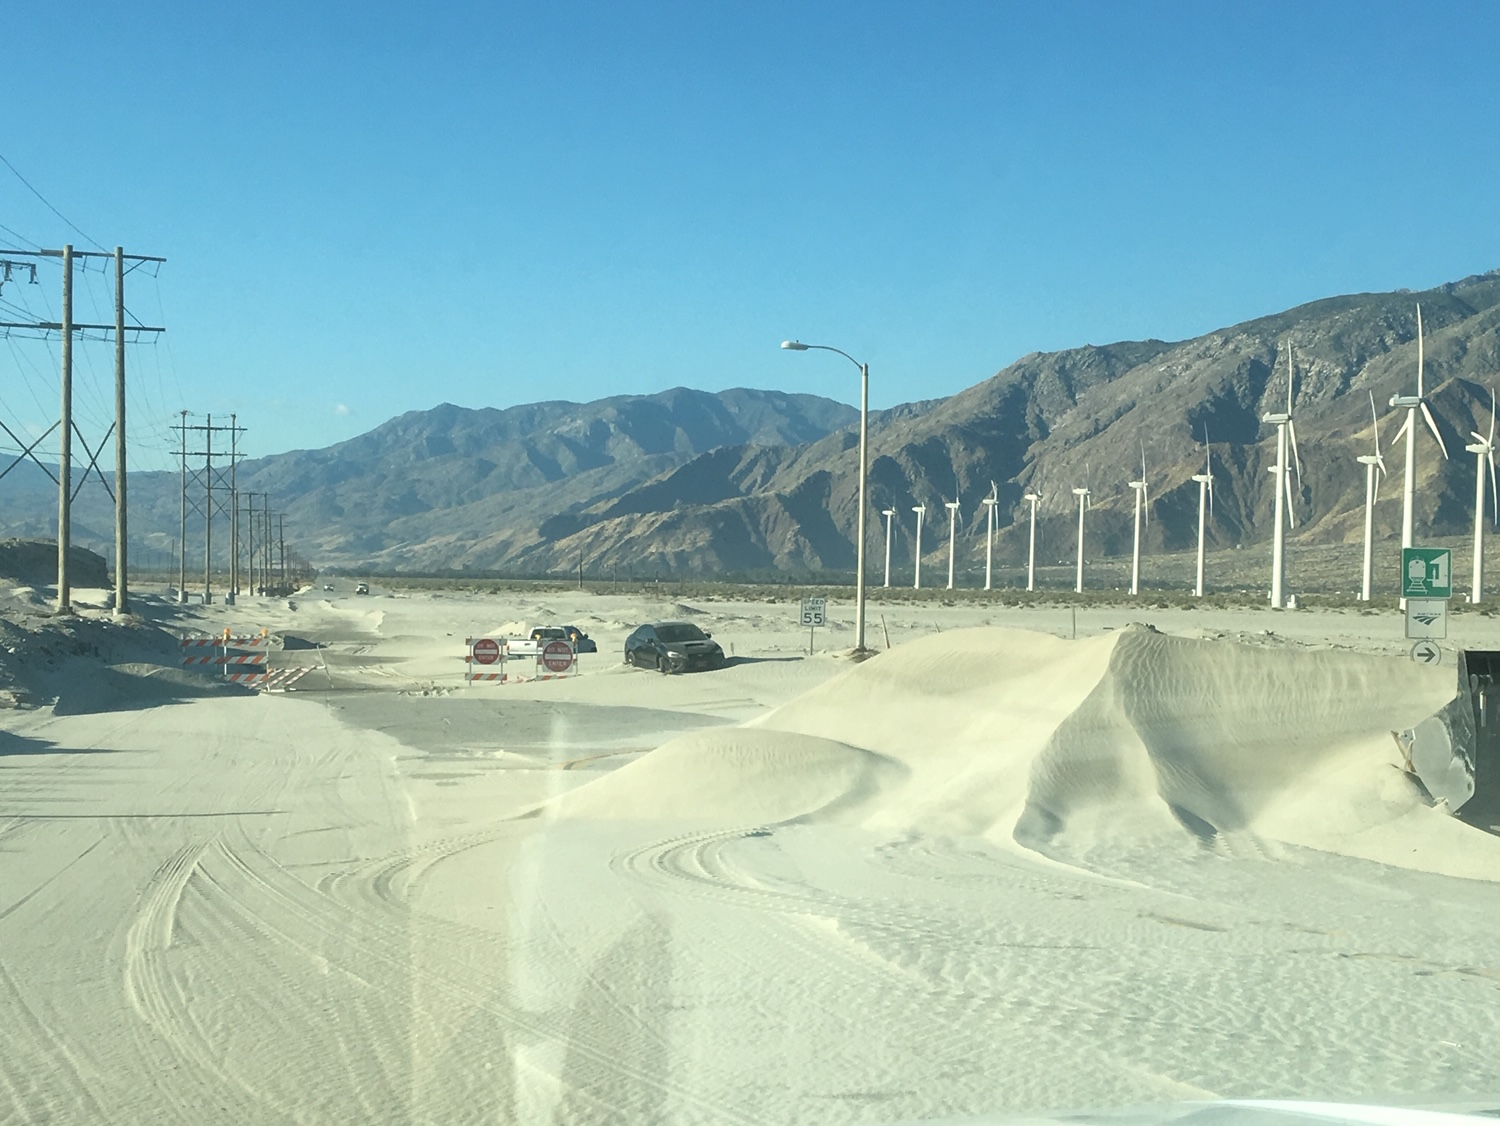 Sand Dunes Continue to Fill Indian Canyon, Palm Springs Unsure about Future Plans